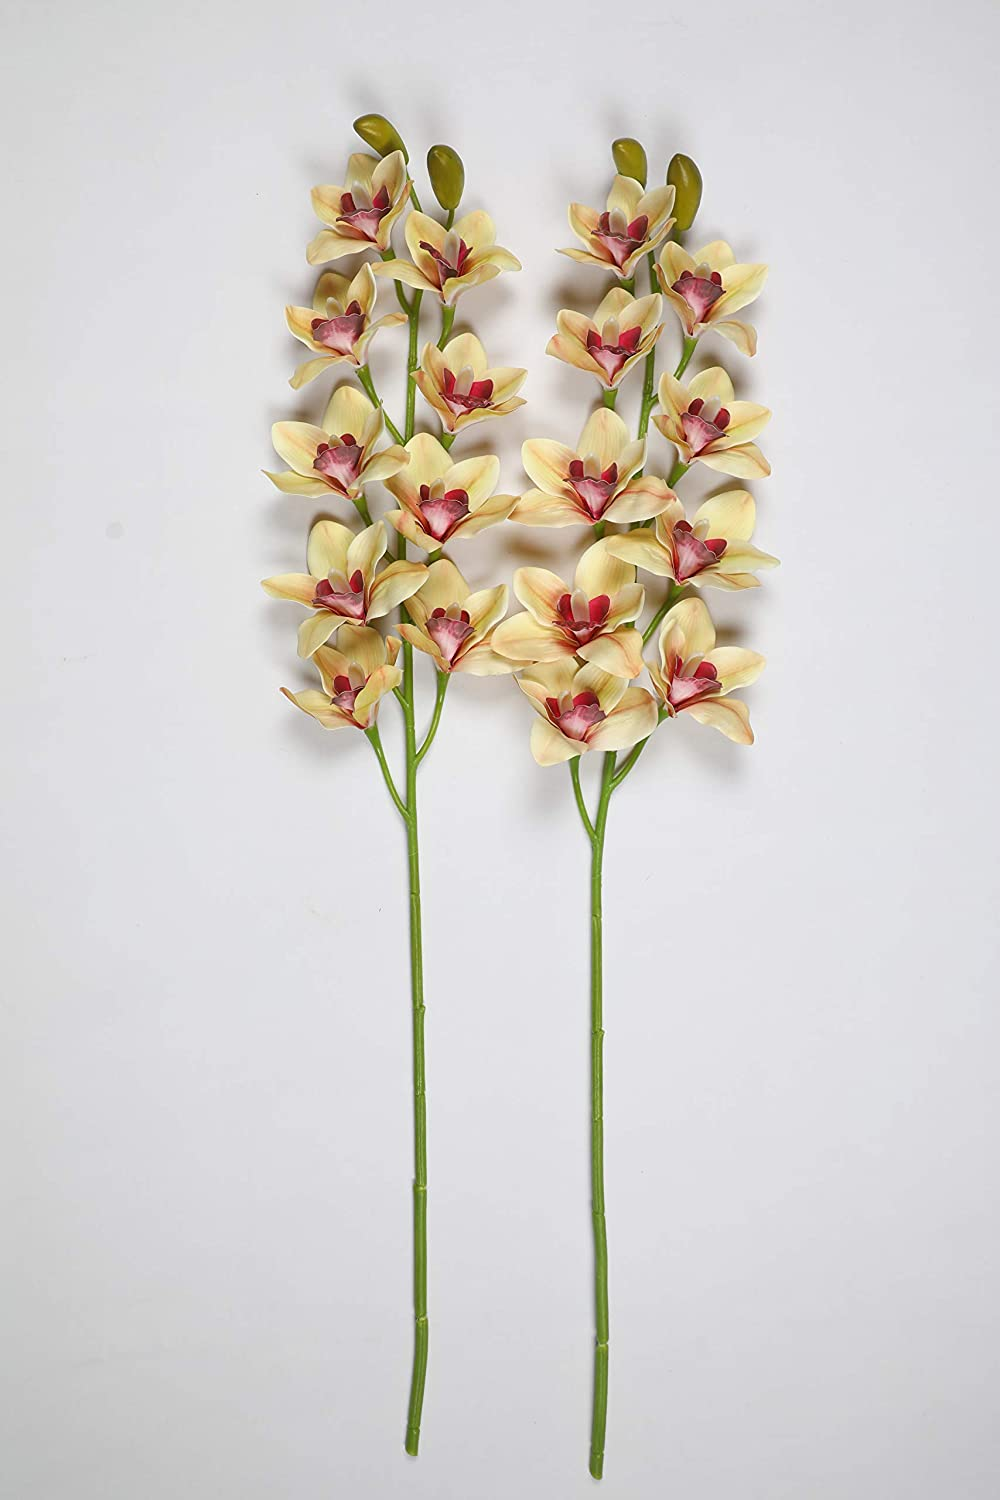 PolliNation Beautiful Artificial Brown Cymbidium Orchid Flower for Home Decoration (Pack of 2, 35 Inch) - Artificial Flowers & Plants - PolliNation